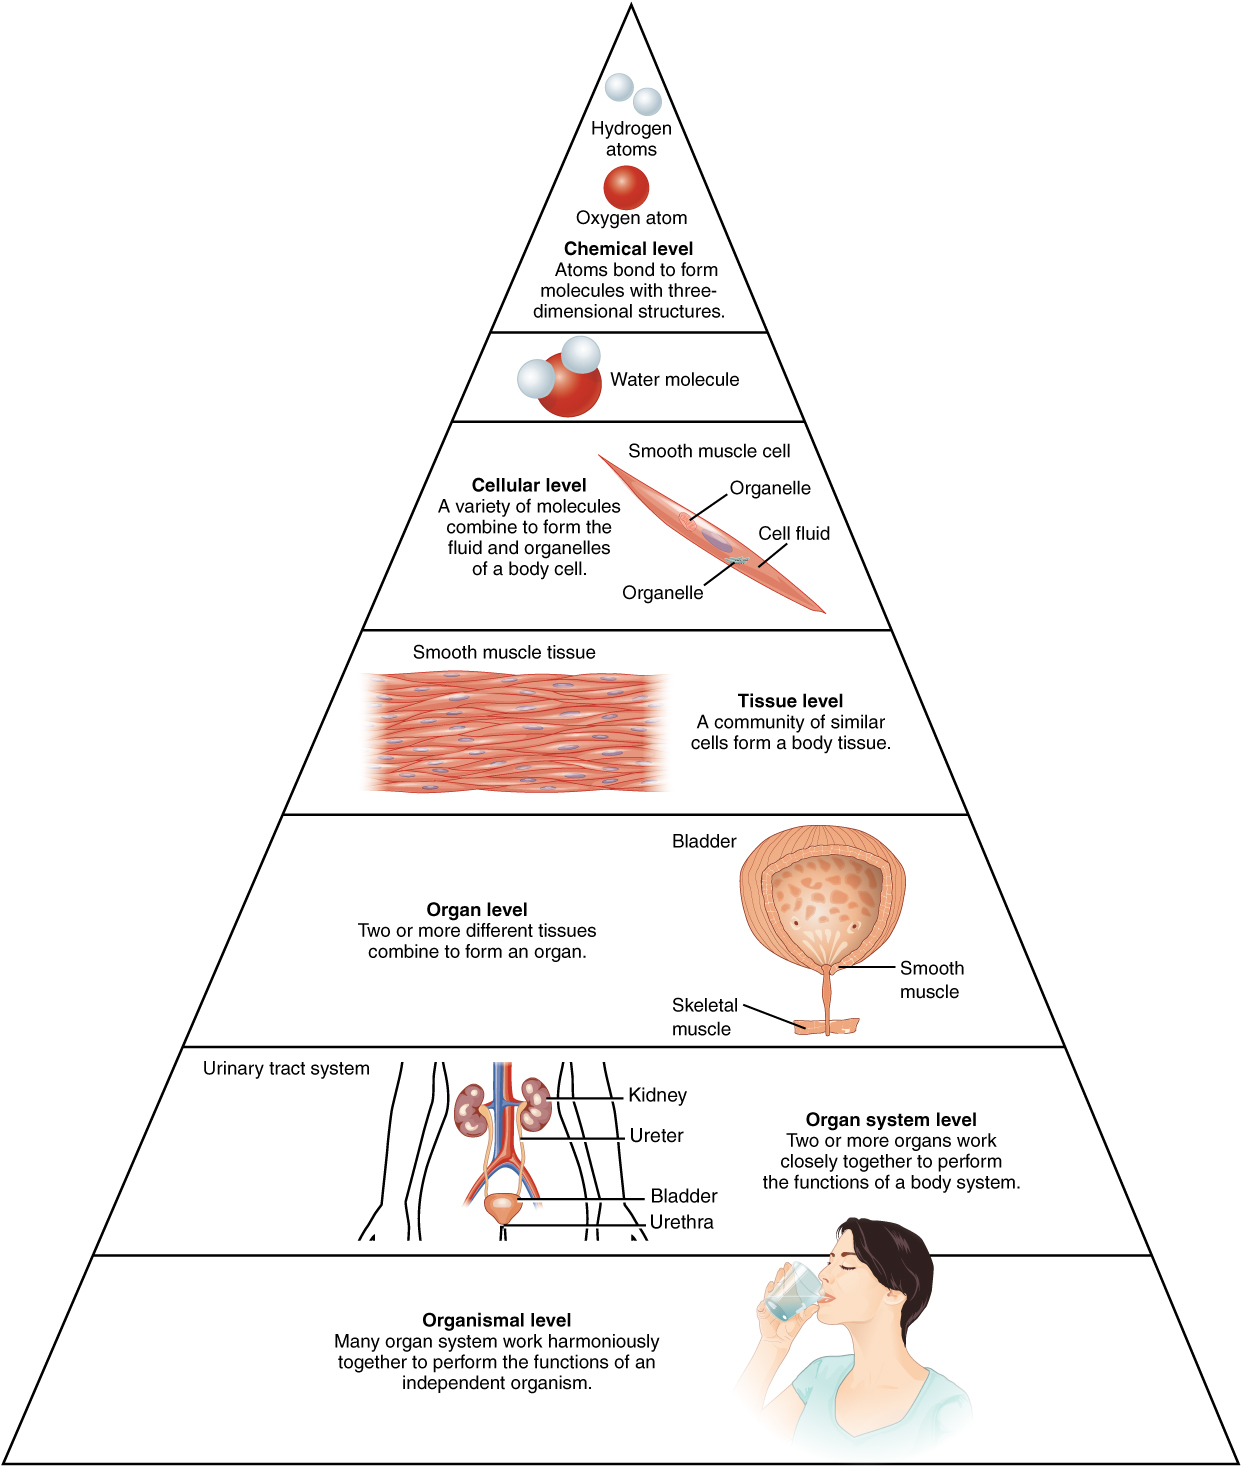 Structural Organization of the Human Body - Anatomy & Physiology ...